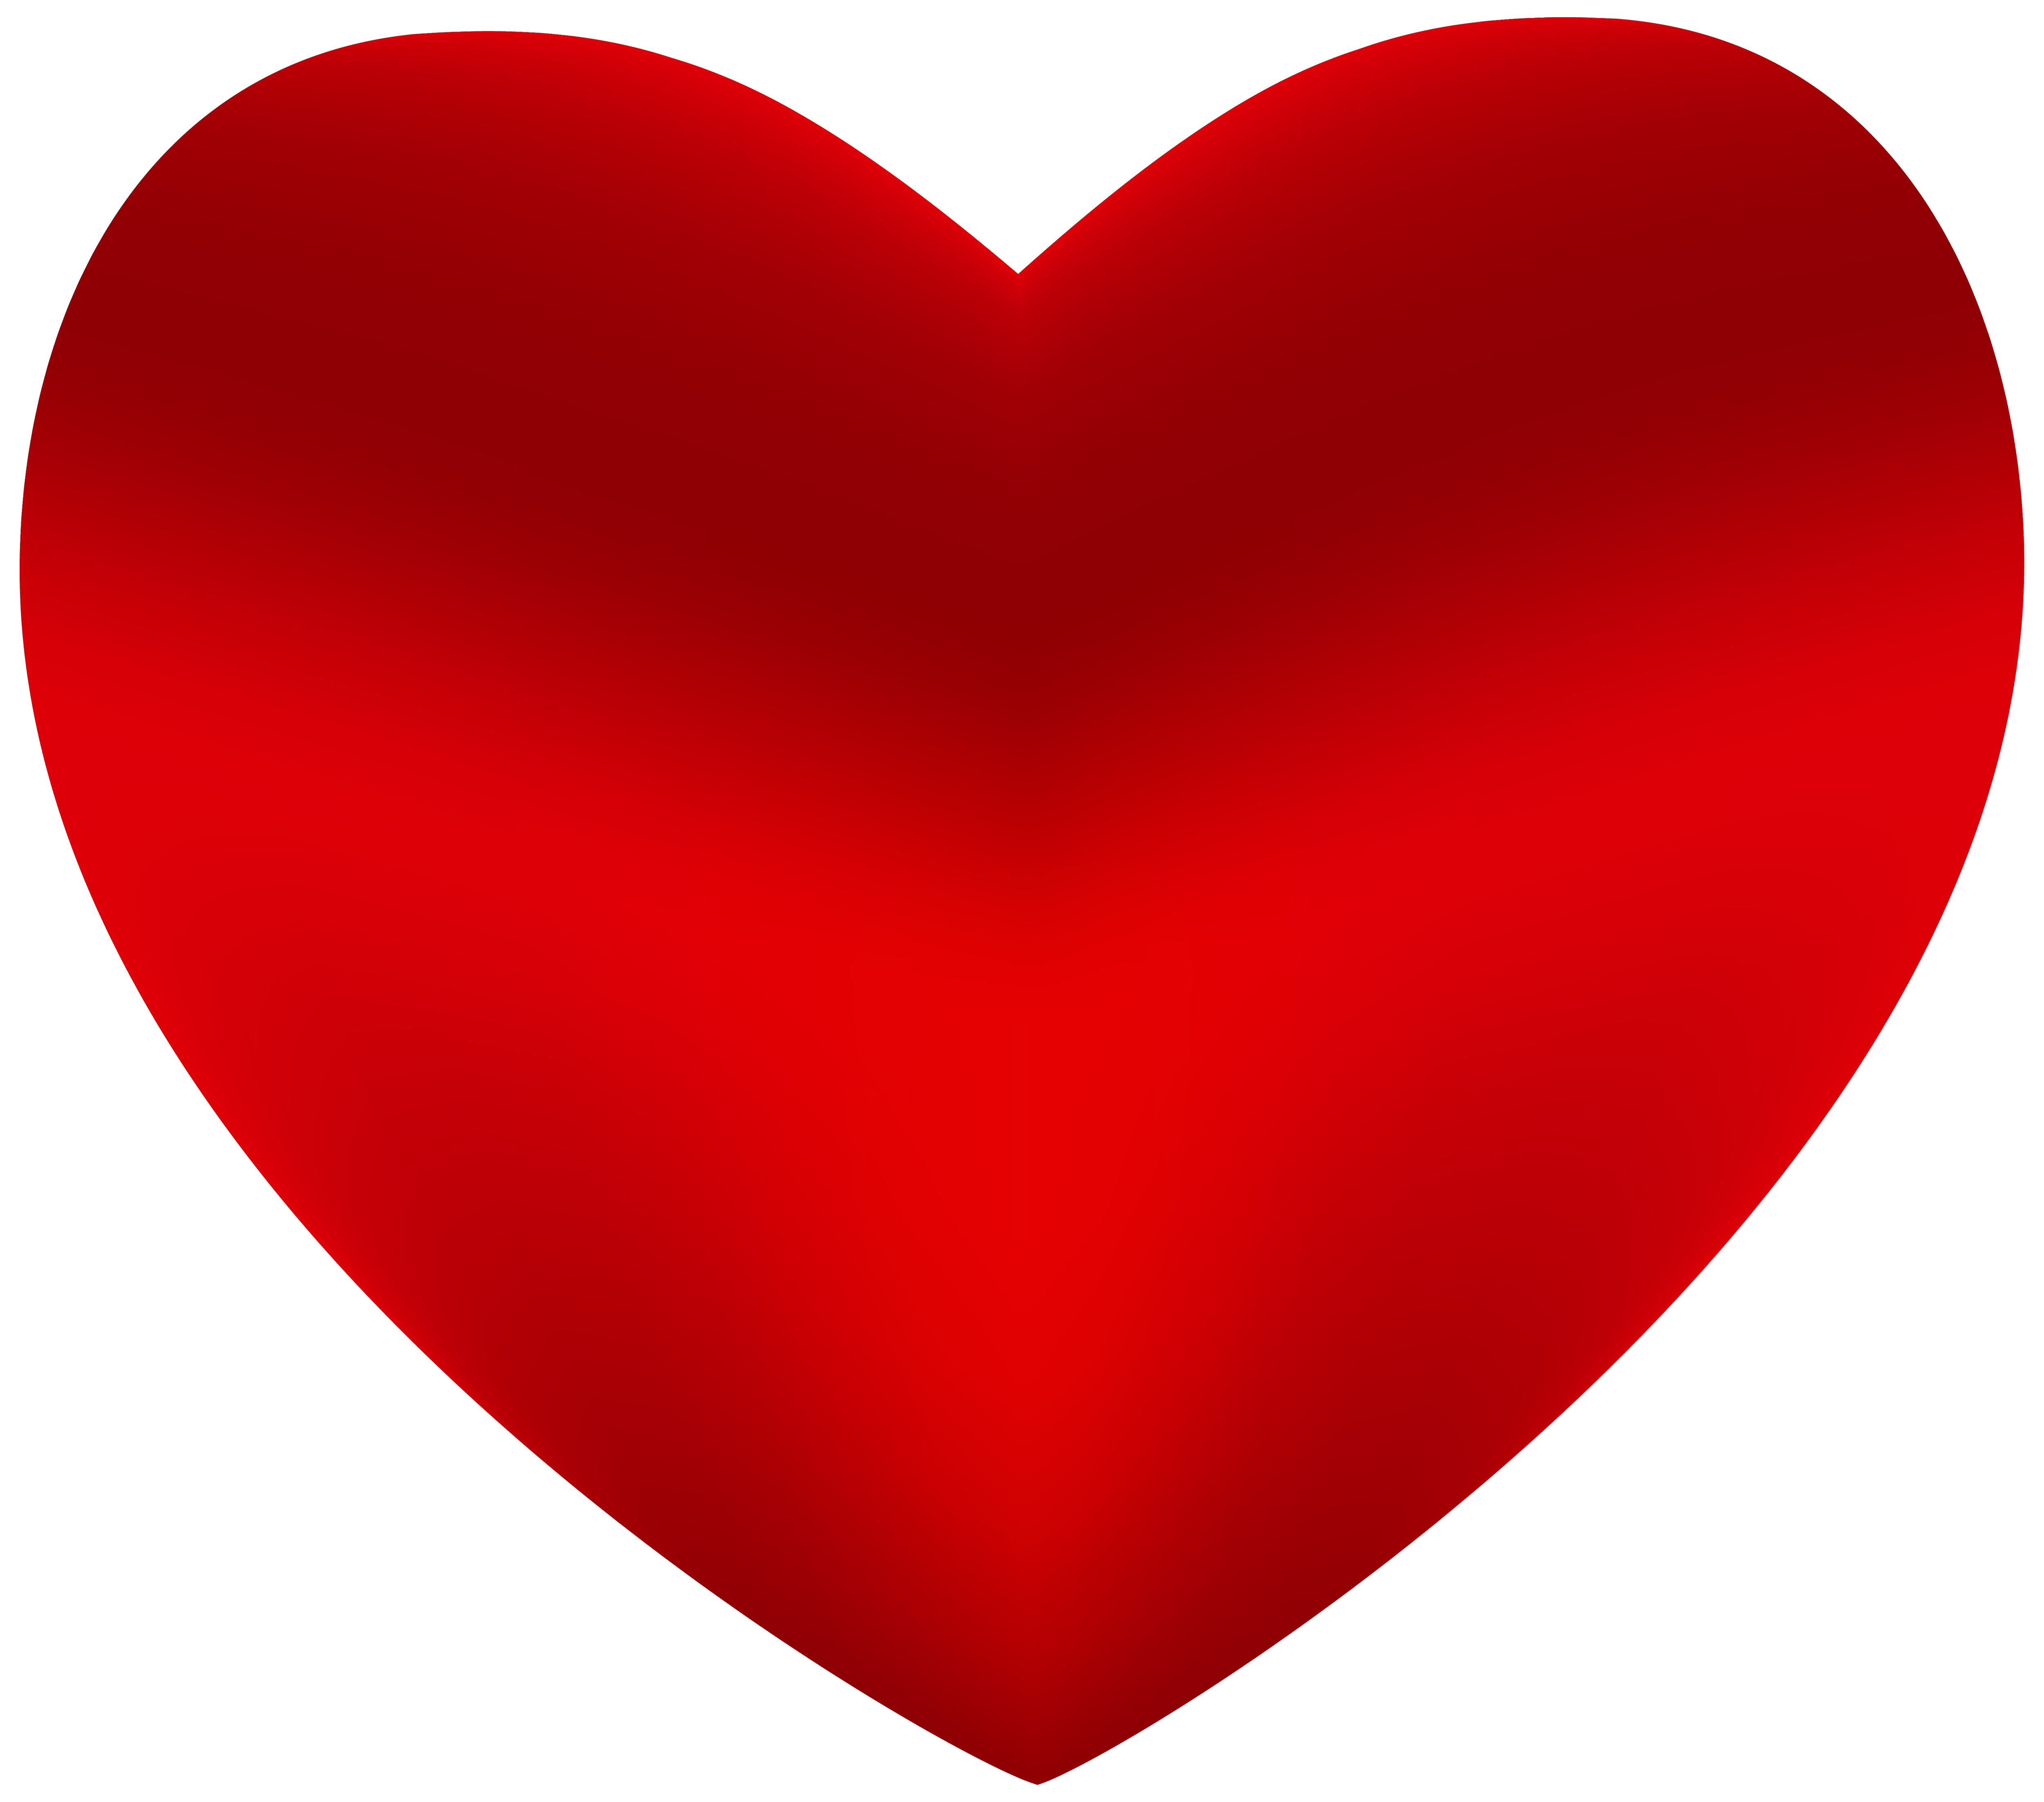 Google clipart hearts clip transparent Google images heart clipart images gallery for free download ... clip transparent